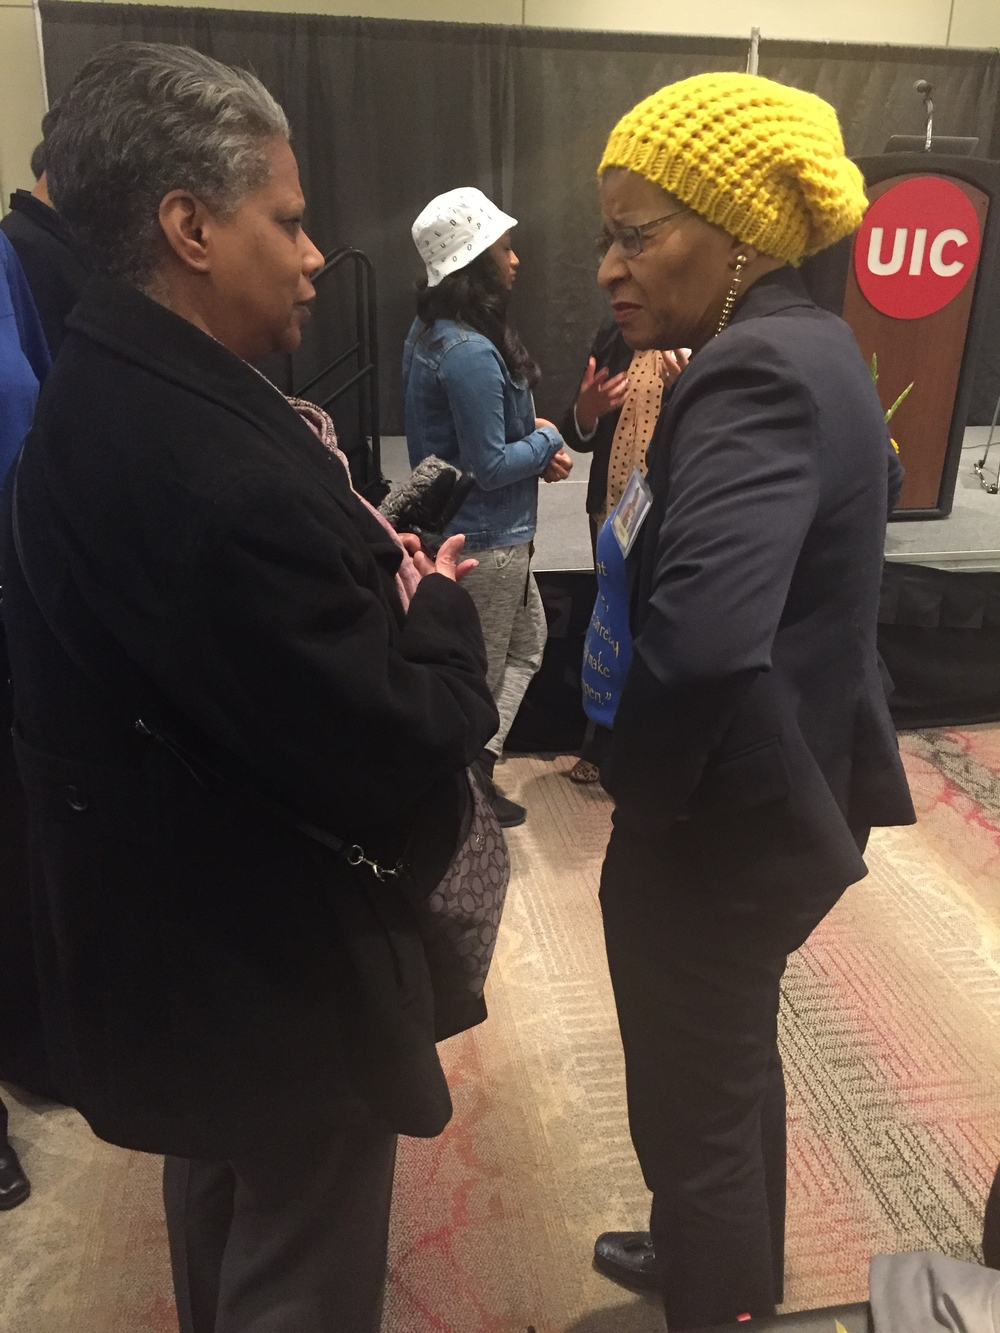 My mother, Lois Stone, talking to Geneva Reed Veal at UIC (February 2016)